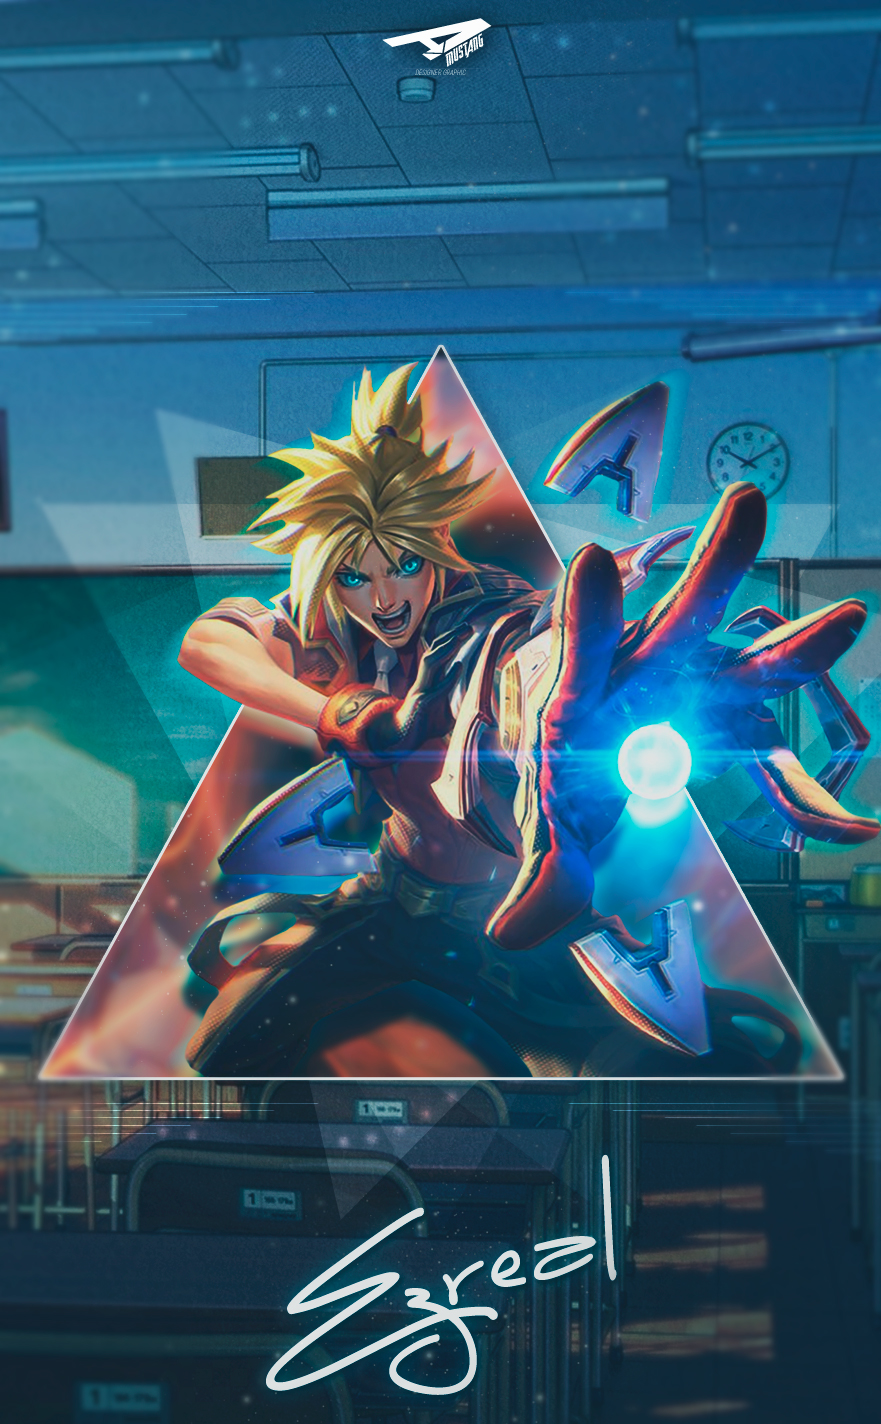 Ezreal | Battle Academy by AlexMust4ng